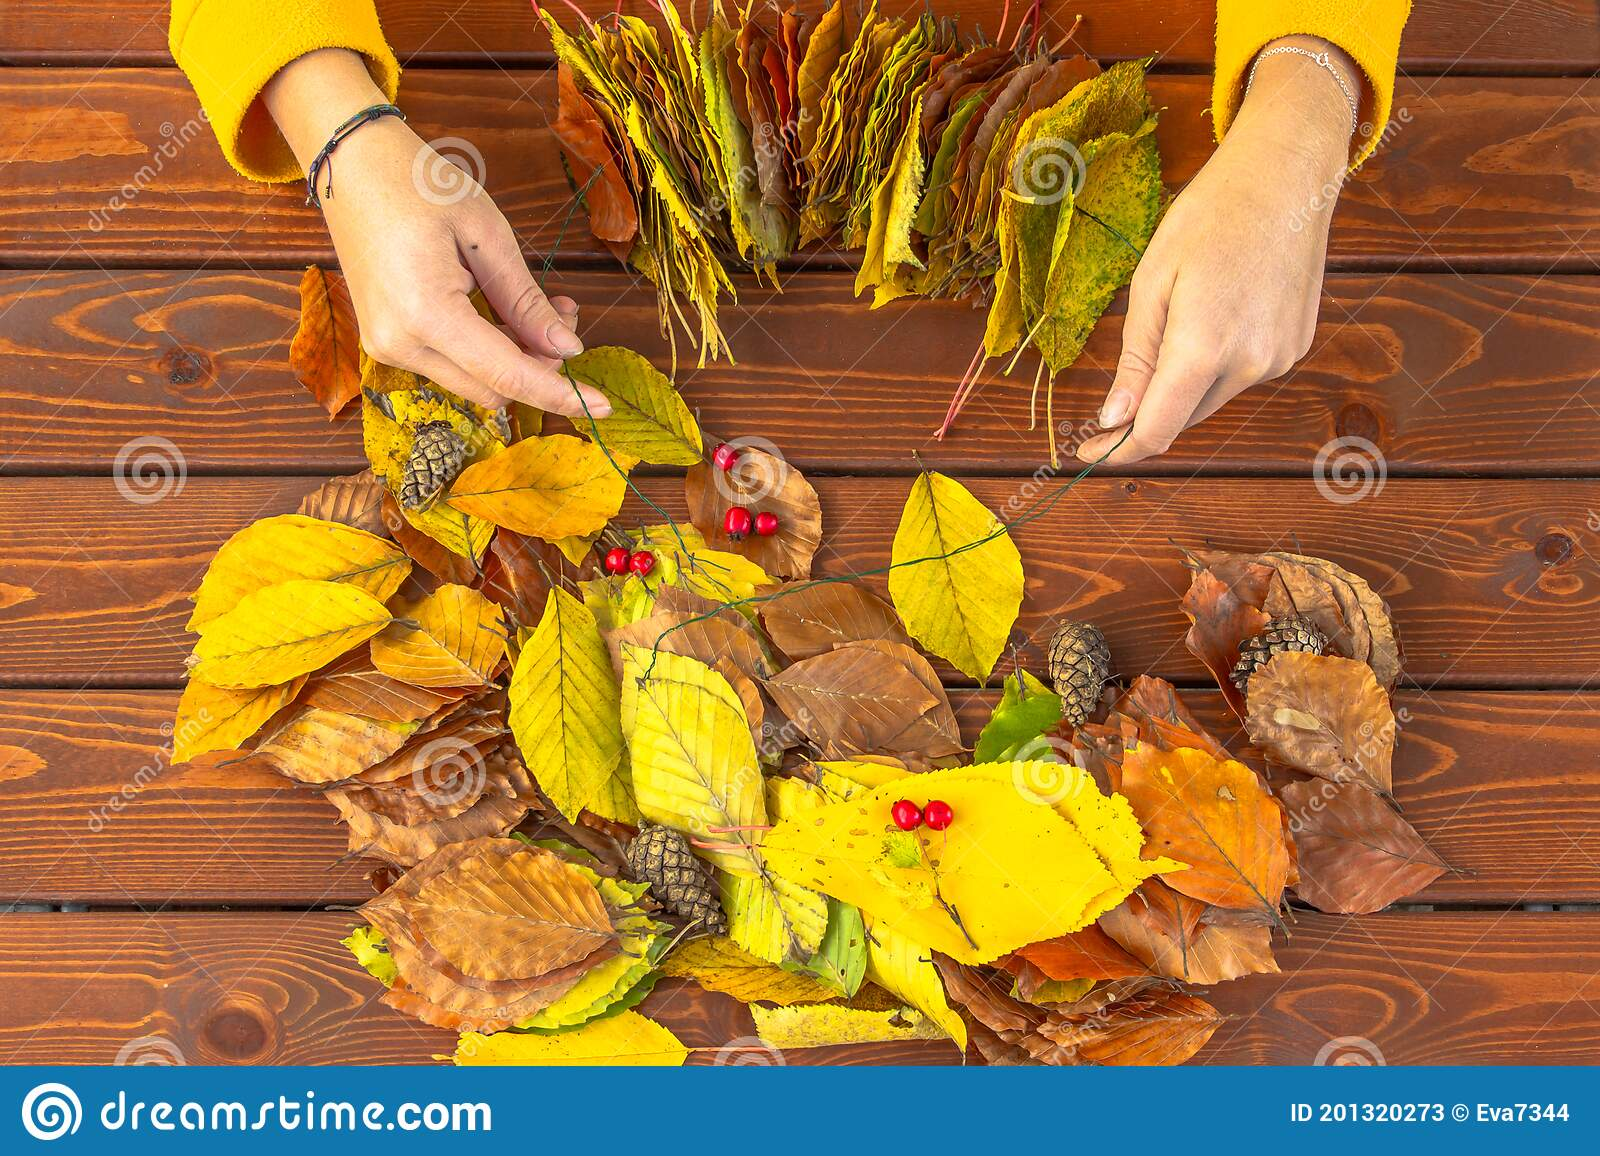 Fall Decorations Handmade With Natural Materials Making Garland With Vibrant Colorful Autumn Leaves Woman Decorating Home Autumn Stock Image Image Of Maple Bright 201320273